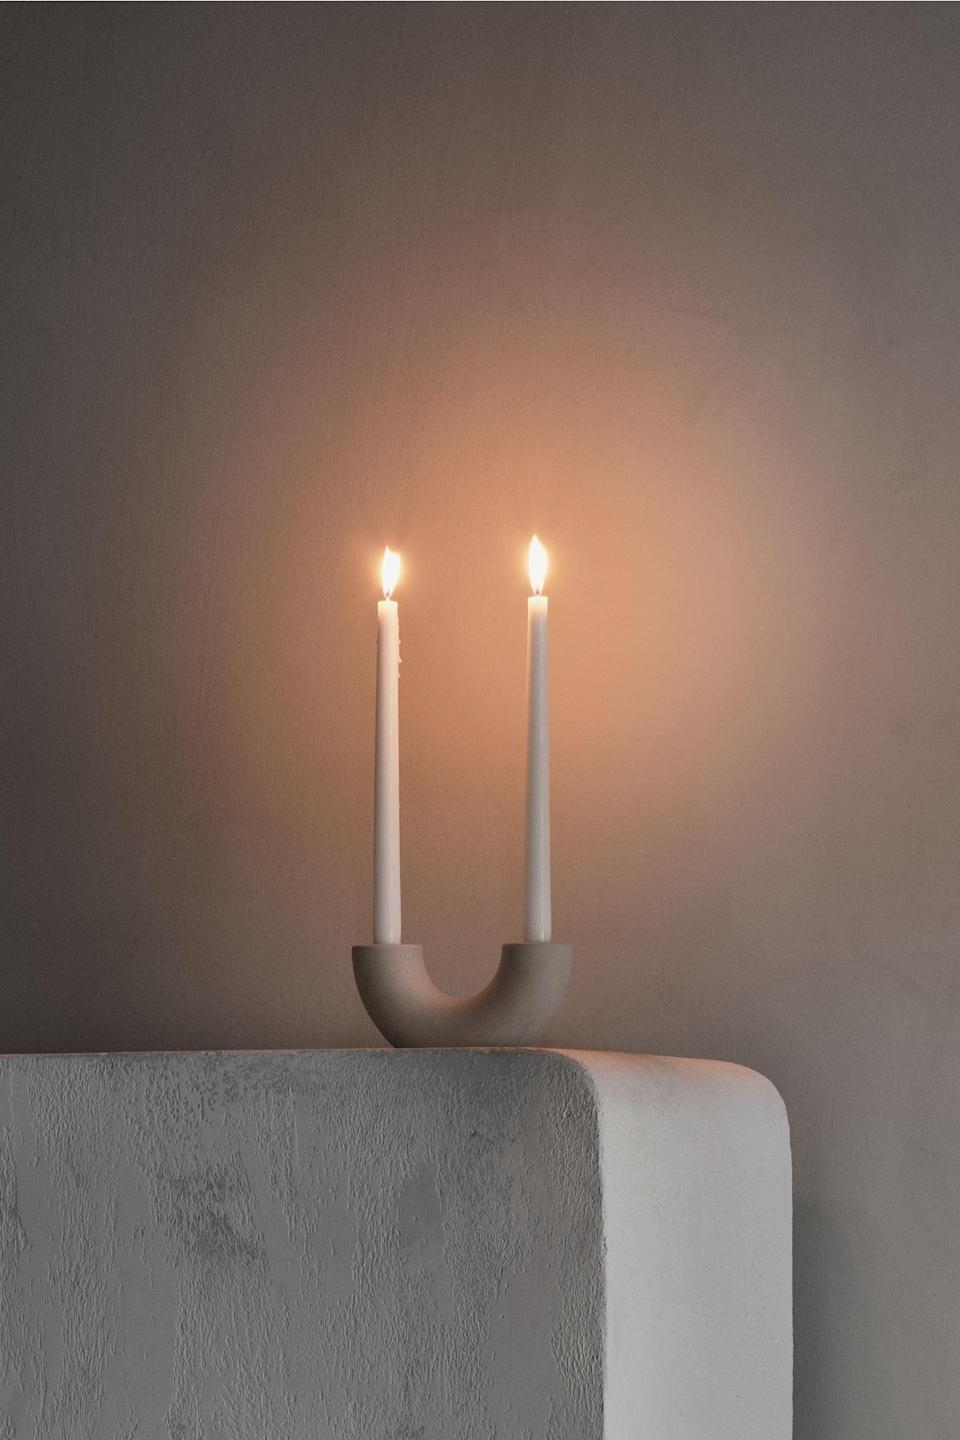 <p>The shape of this <span>H&amp;M Ceramic Candlestick</span> ($18) makes it quirky, bringing lots of personality to any surface it's placed on. We love the elevated look.</p>